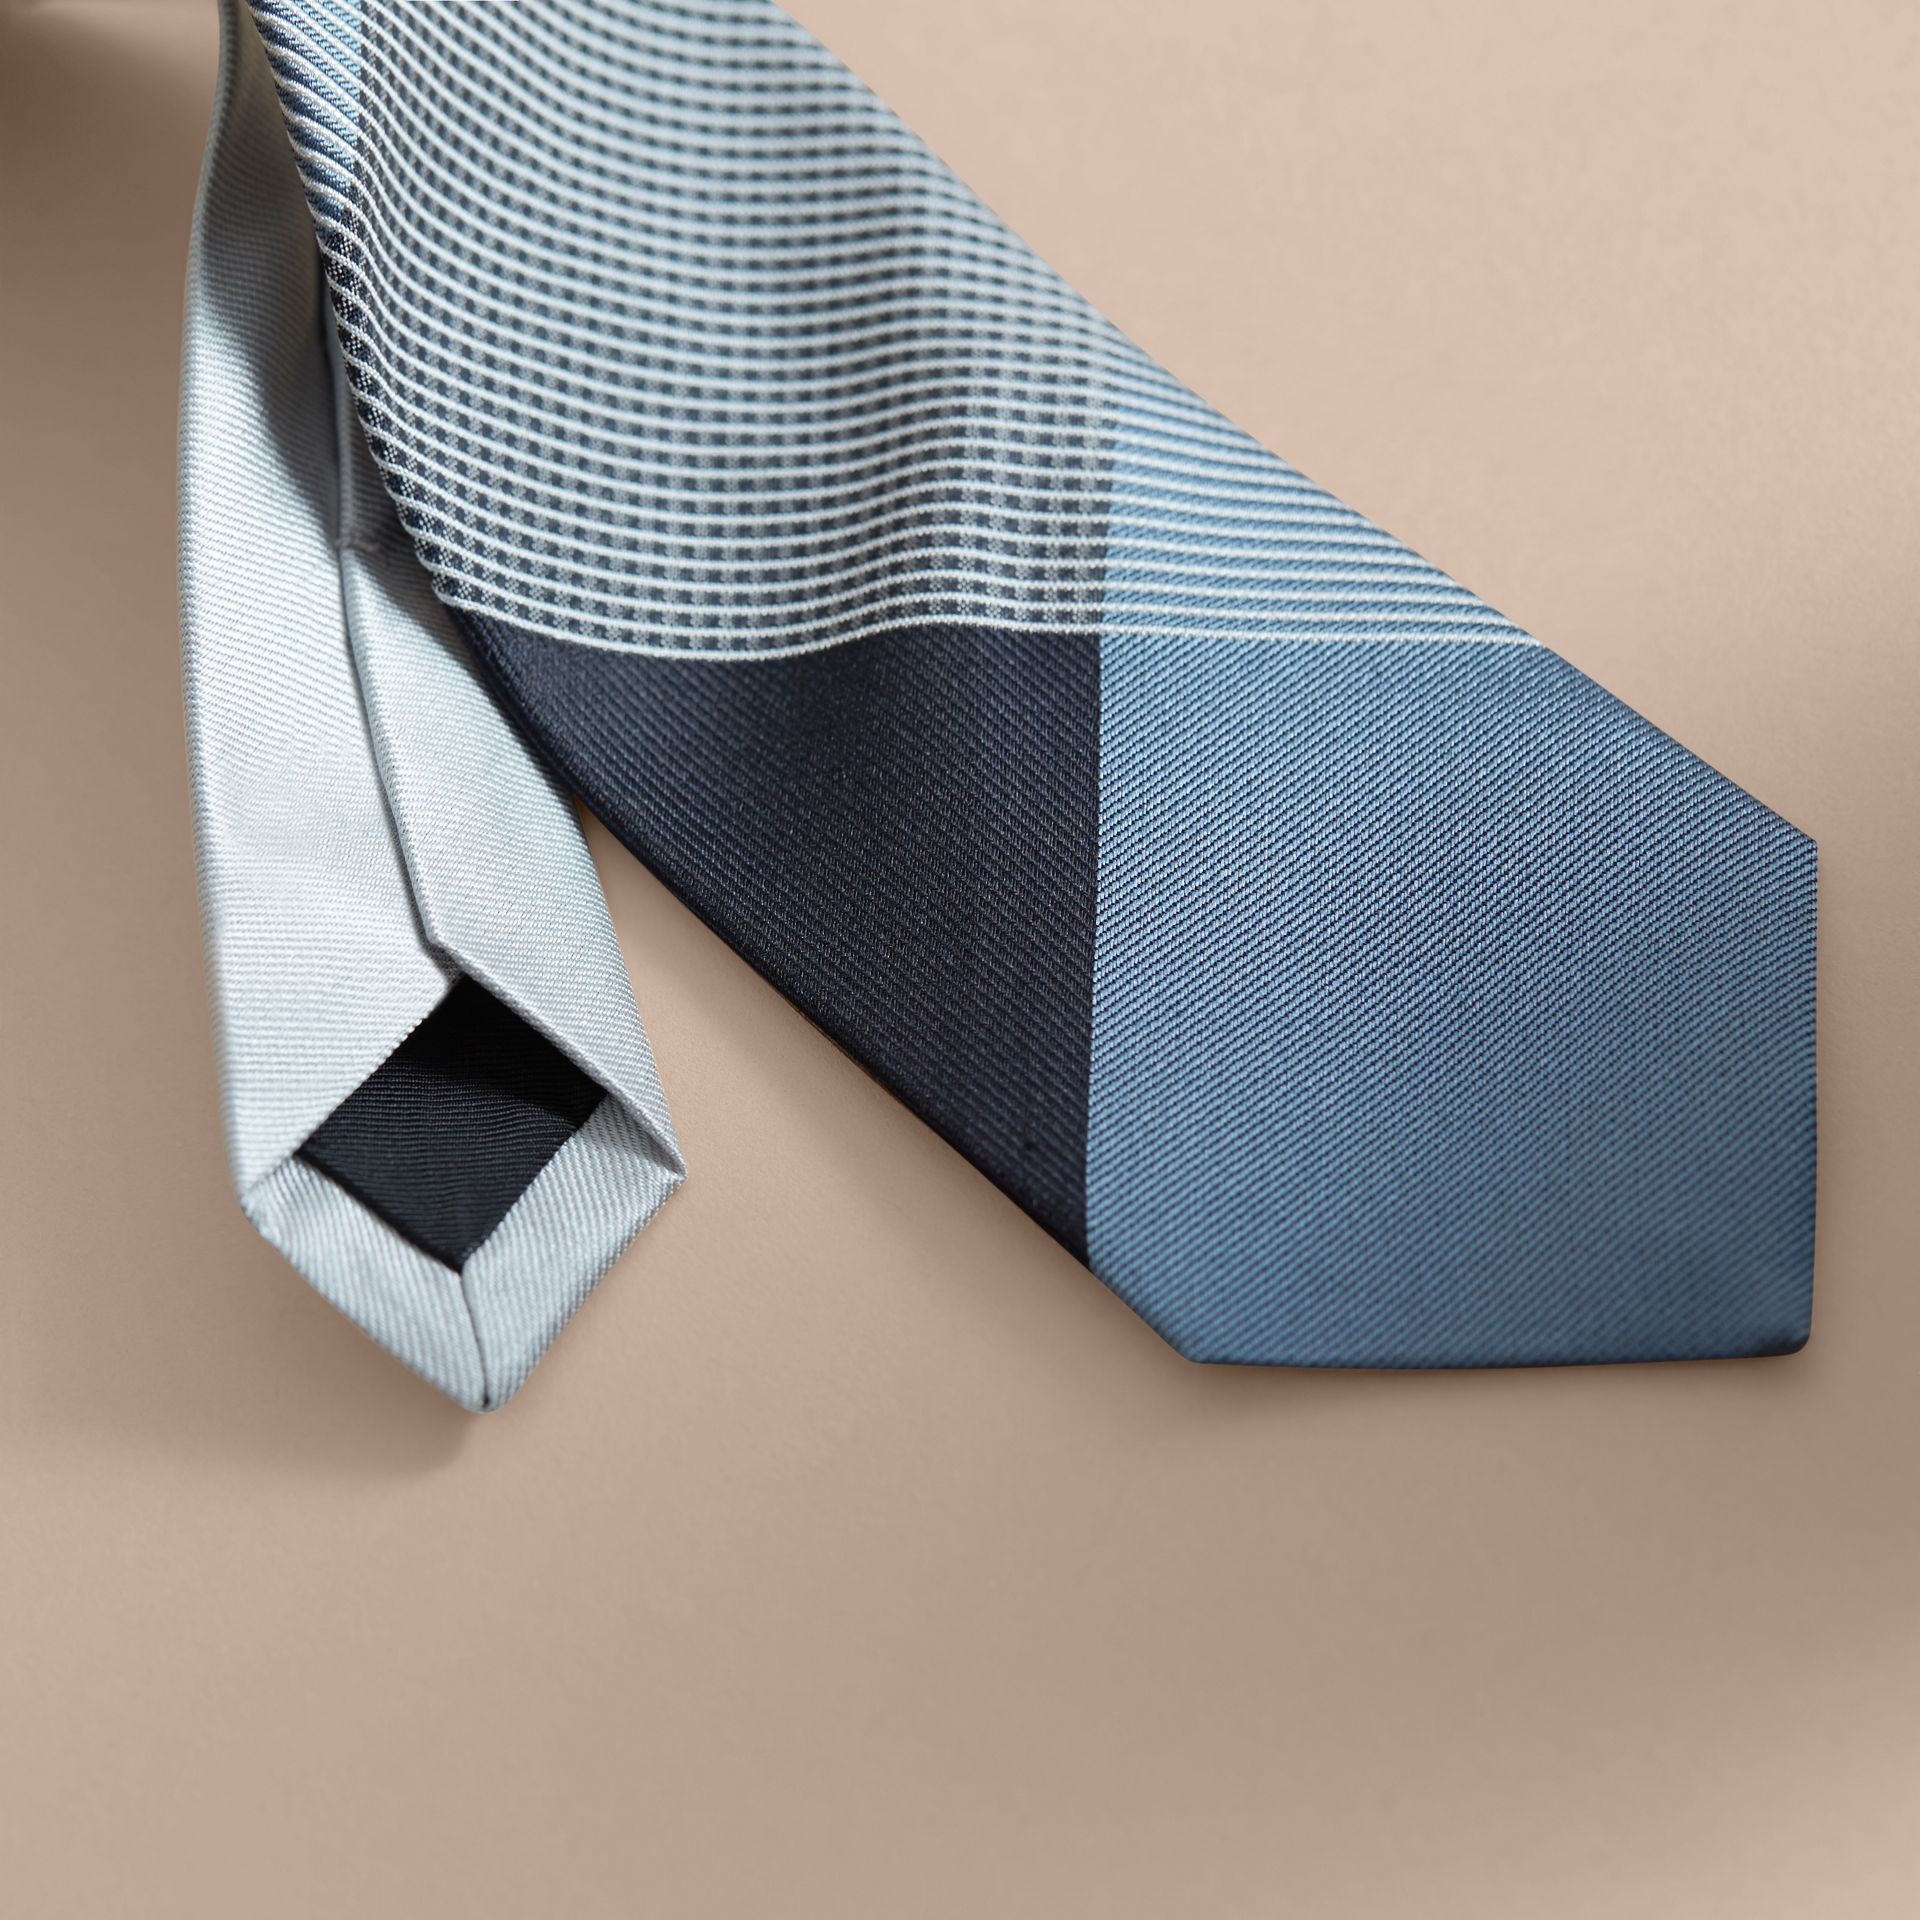 Modern Cut Gingham Check Silk Jacquard Tie in Slate Blue - Men | Burberry Canada - gallery image 2